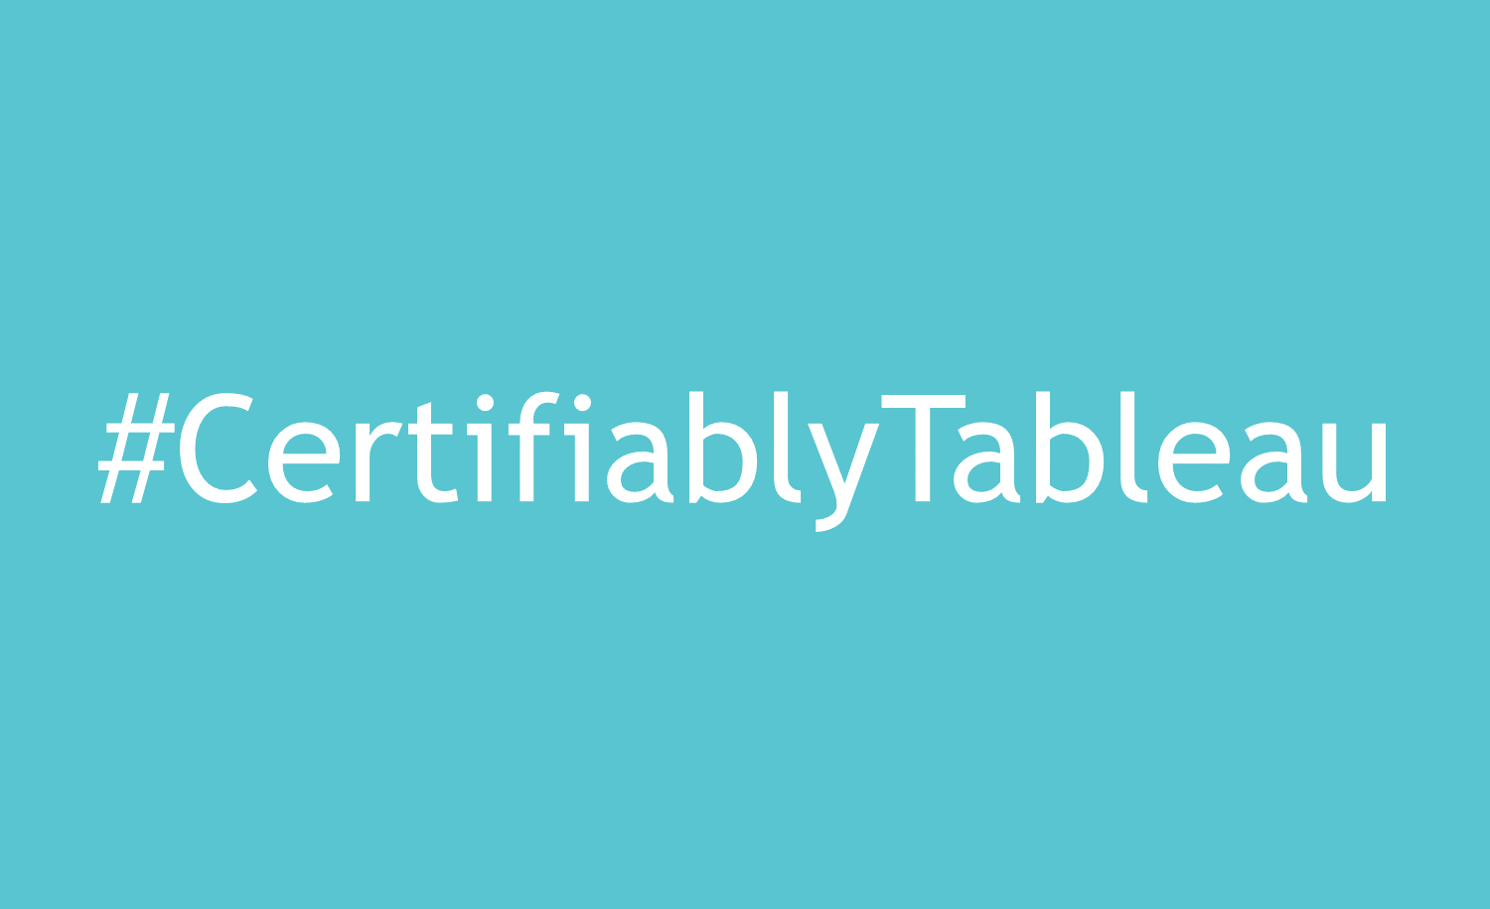 The Way I Learn For My Tableau Desktop Specialist Certification By Srirammscda Medium Learn a new language effectively with our online language courses! the way i learn for my tableau desktop